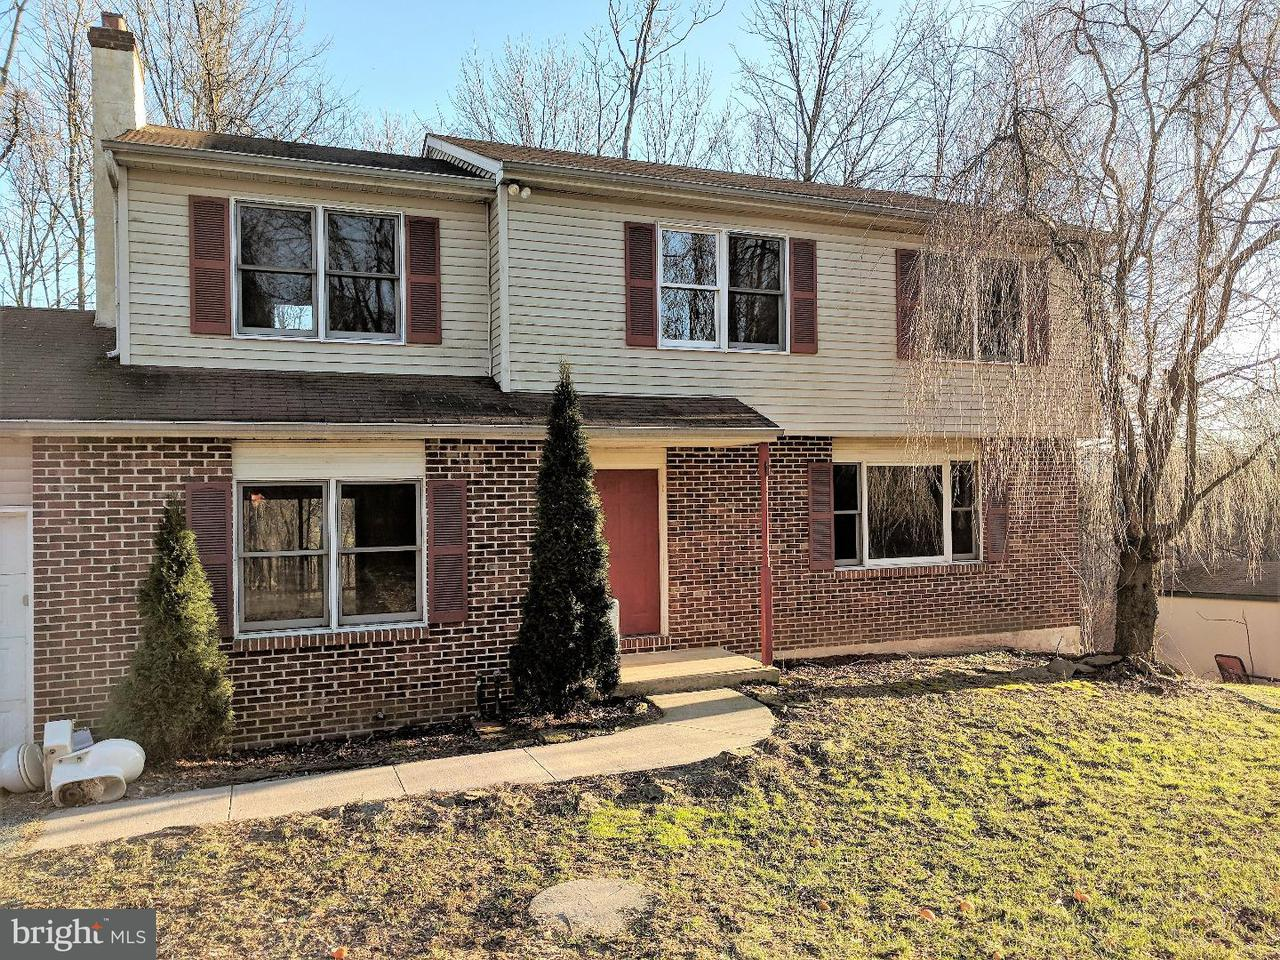 Single Family Home for Rent at 1284 W KINGS HWY Coatesville, Pennsylvania 19320 United States